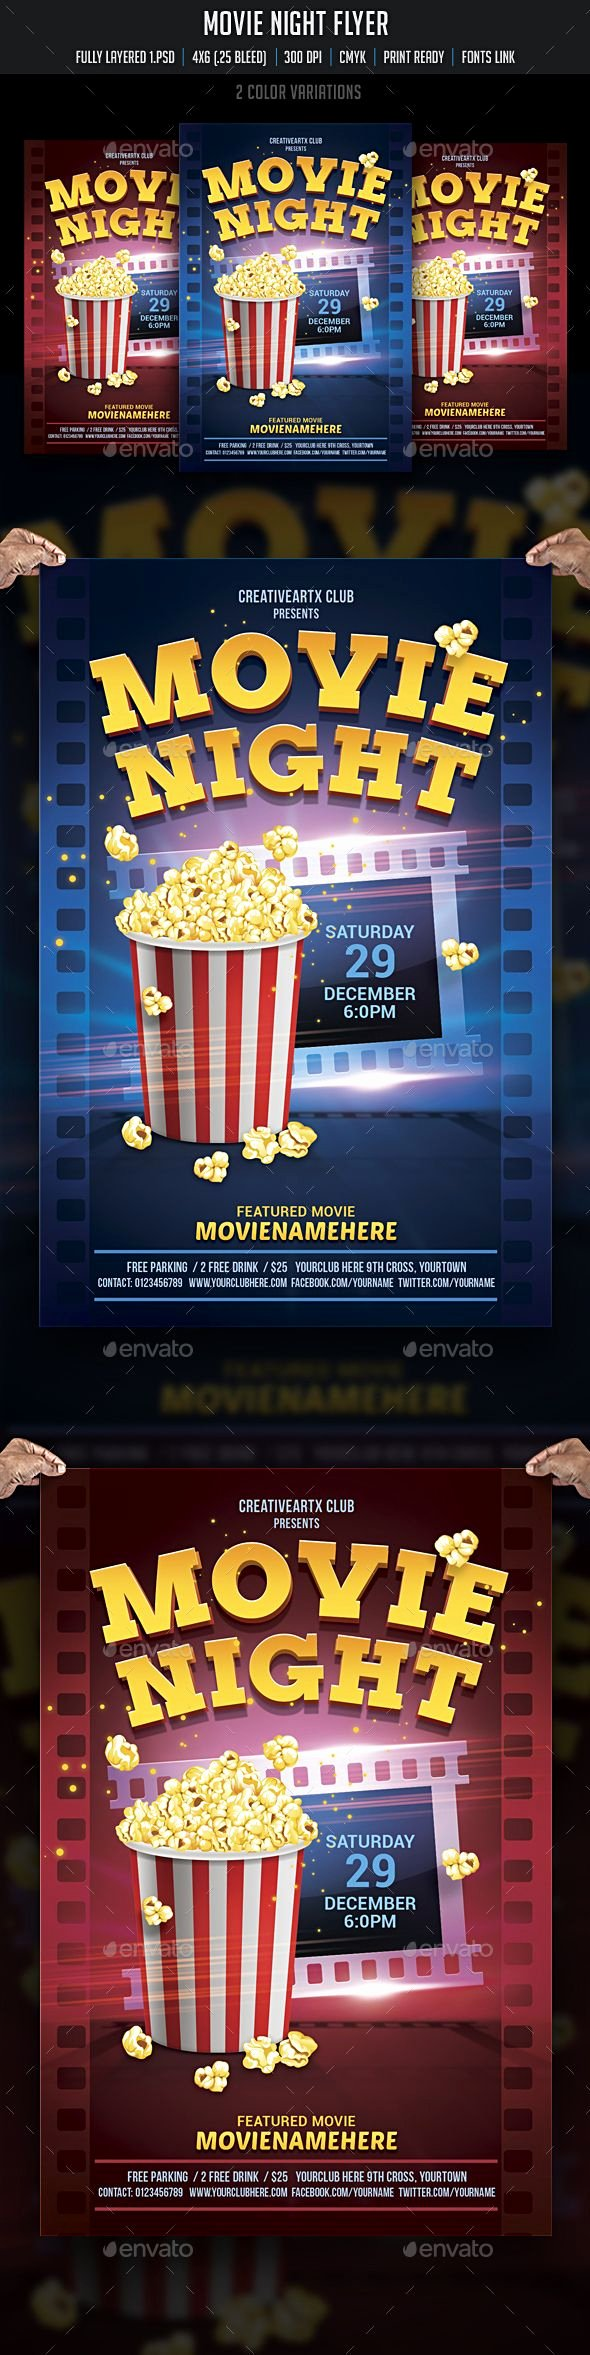 Movie Night Flyer Template Luxury 1000 Ideas About Movie Poster Template On Pinterest